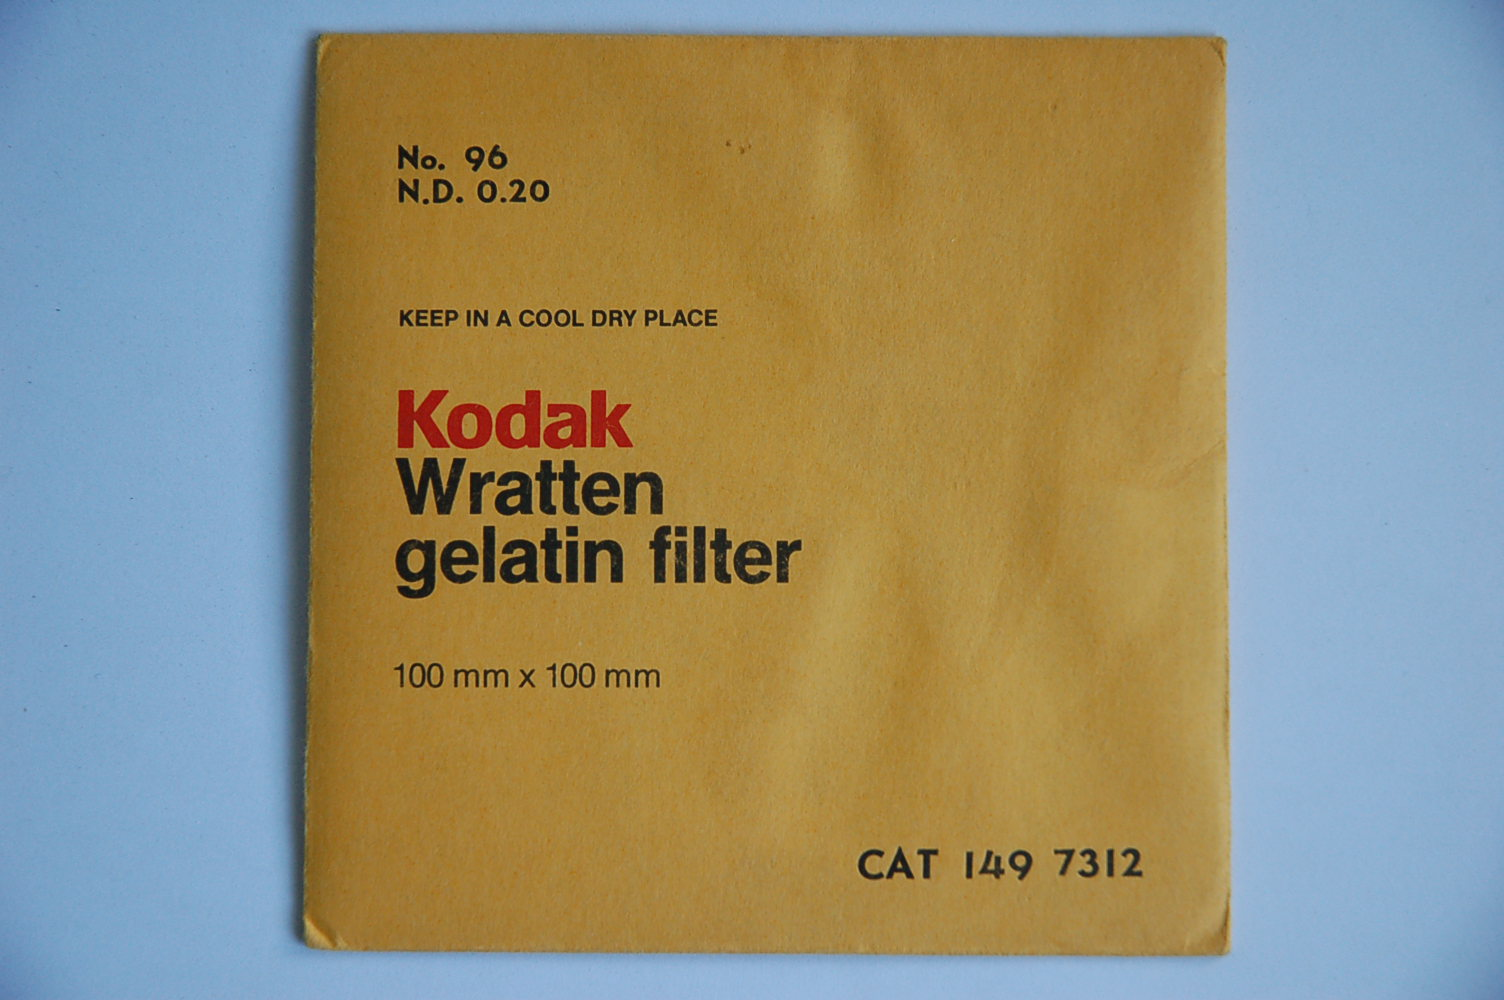 Kodak Filterfolie Nr.96 ND0,20 100x100mm 1497312